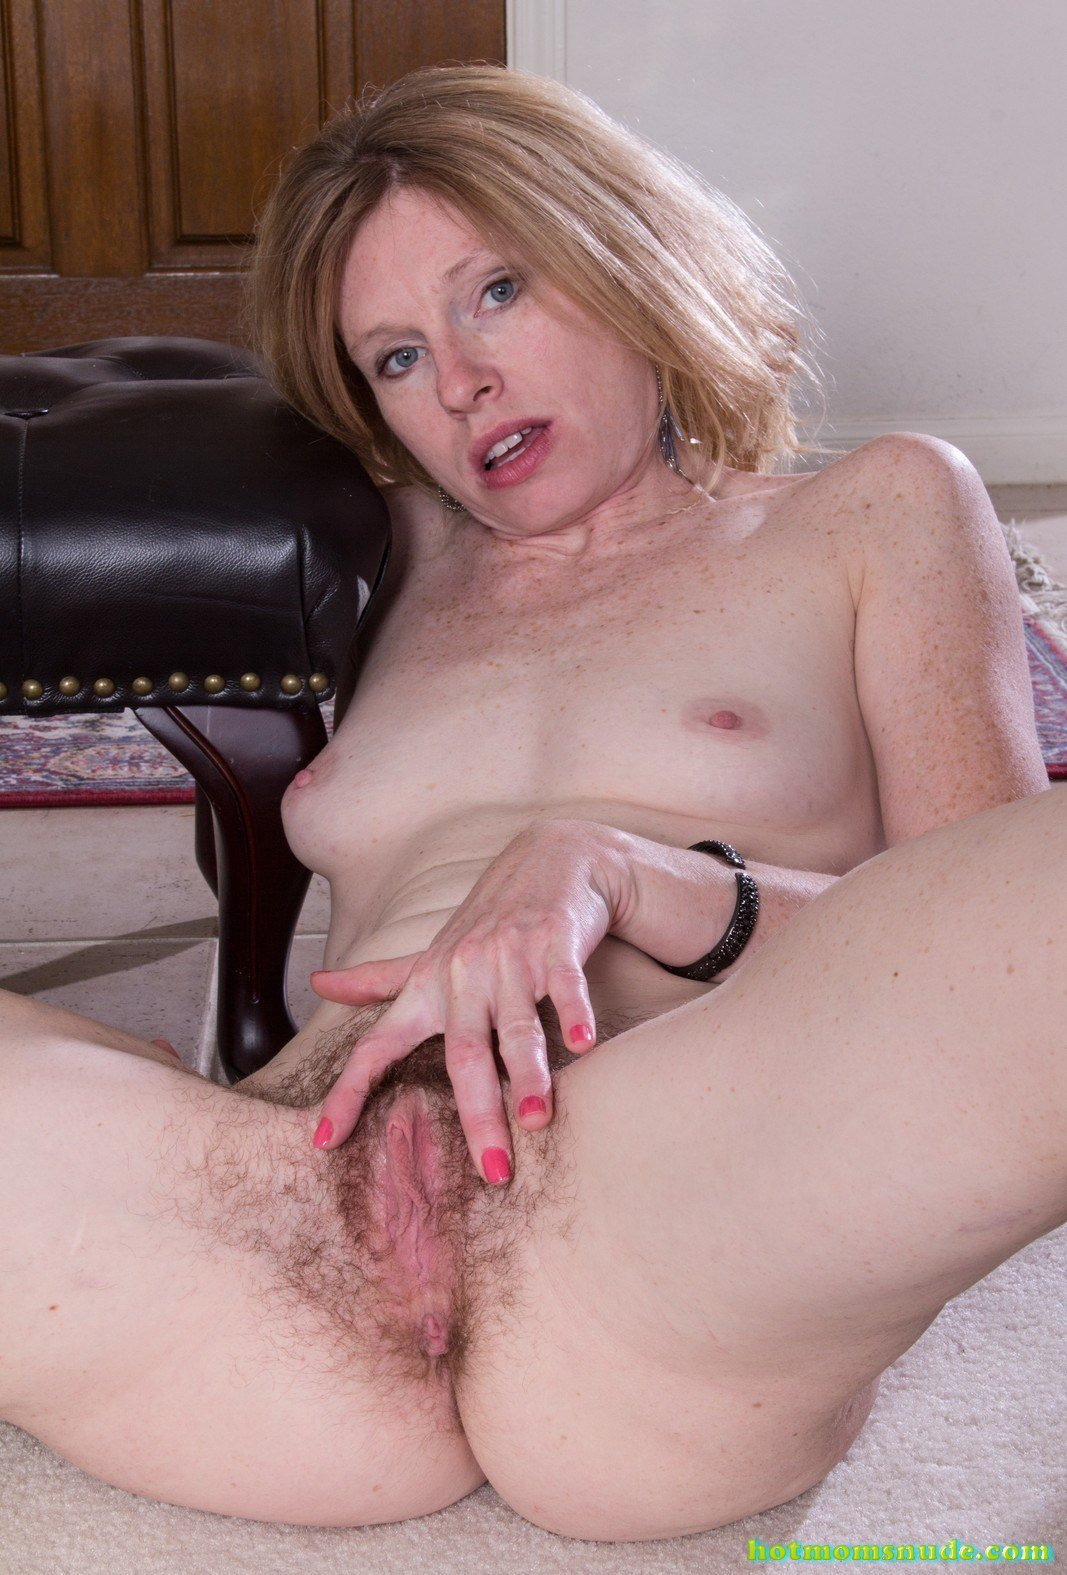 Tommi,Lacey Nude Pics And Biography - Hot Moms Nude-1330